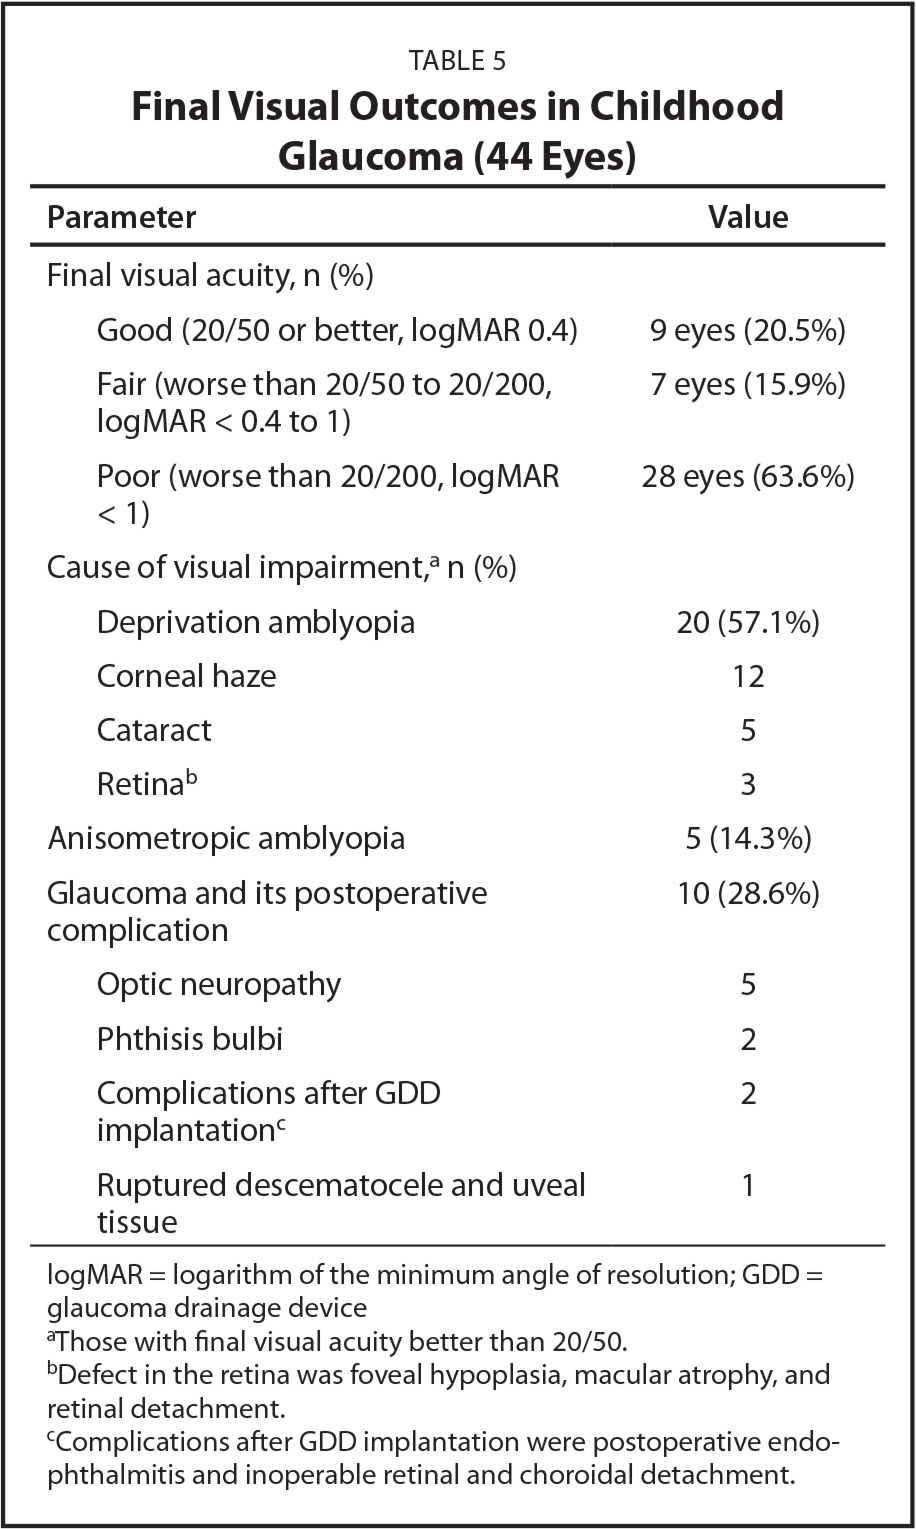 Final Visual Outcomes in Childhood Glaucoma (44 Eyes)